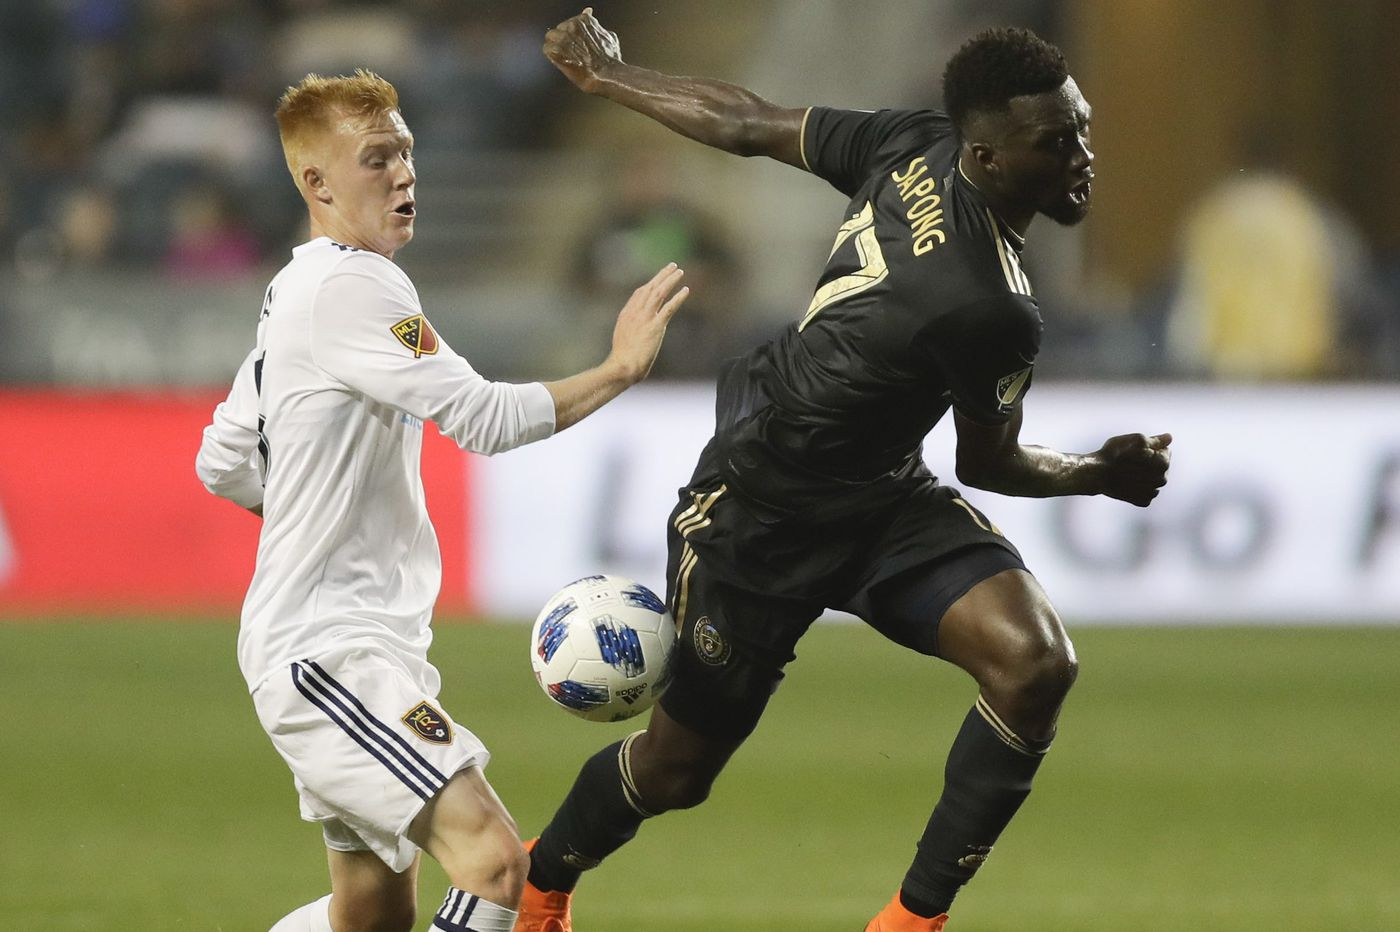 Union's Jim Curtin believes C.J. Sapong's goal drought is 'fixable,' but Cory Burke will get more playing time